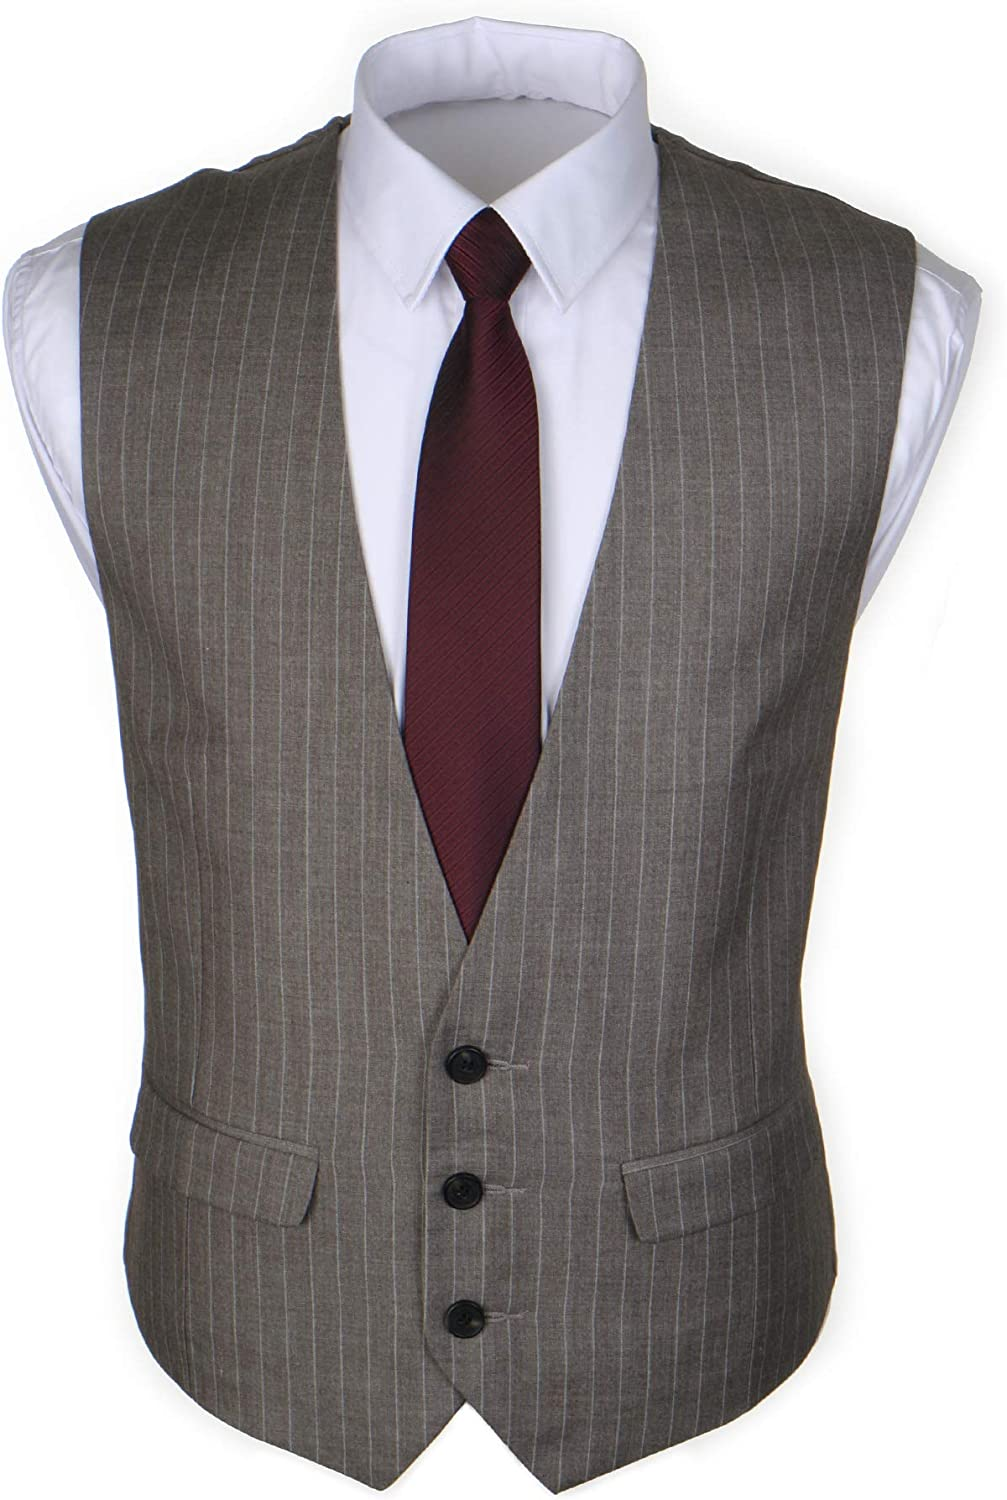 Ruth/&Boaz Mens 2Pockets 3Button Business Suit Vest